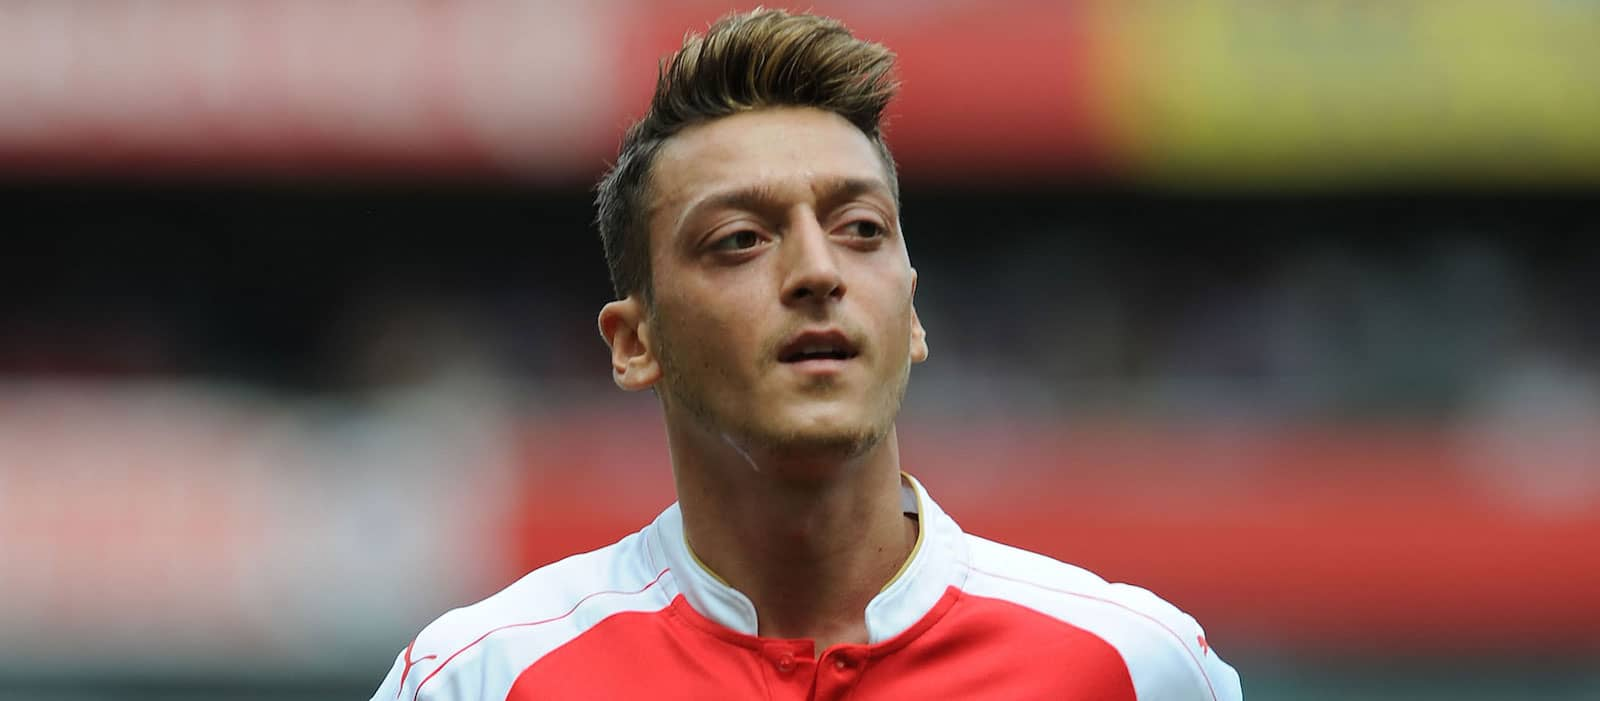 Mesut Ozil speaks out amid speculation surrounding Manchester United move